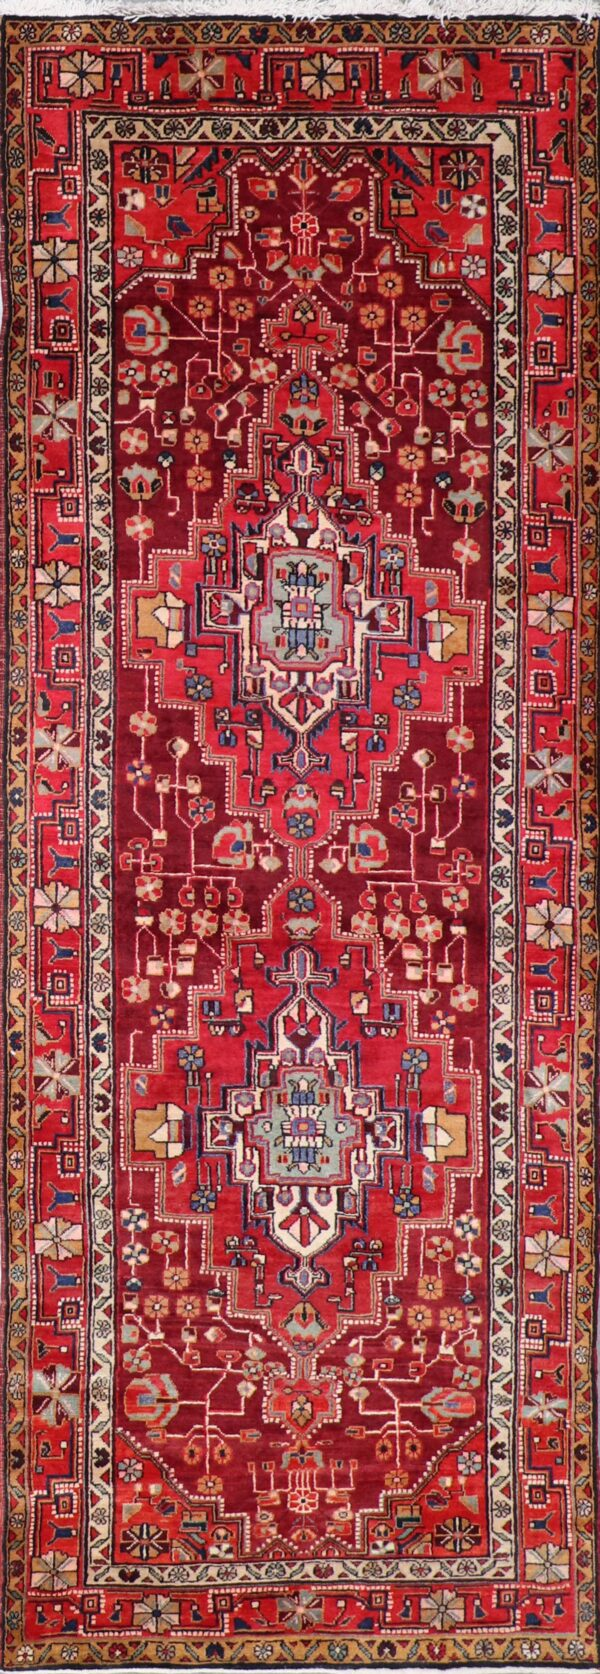 """3'9""""x10'10"""" Traditional Persian Red & Tan Wool Hand-Knotted Rug - Direct Rug Import   Rugs in Chicago, Indiana,South Bend,Granger"""